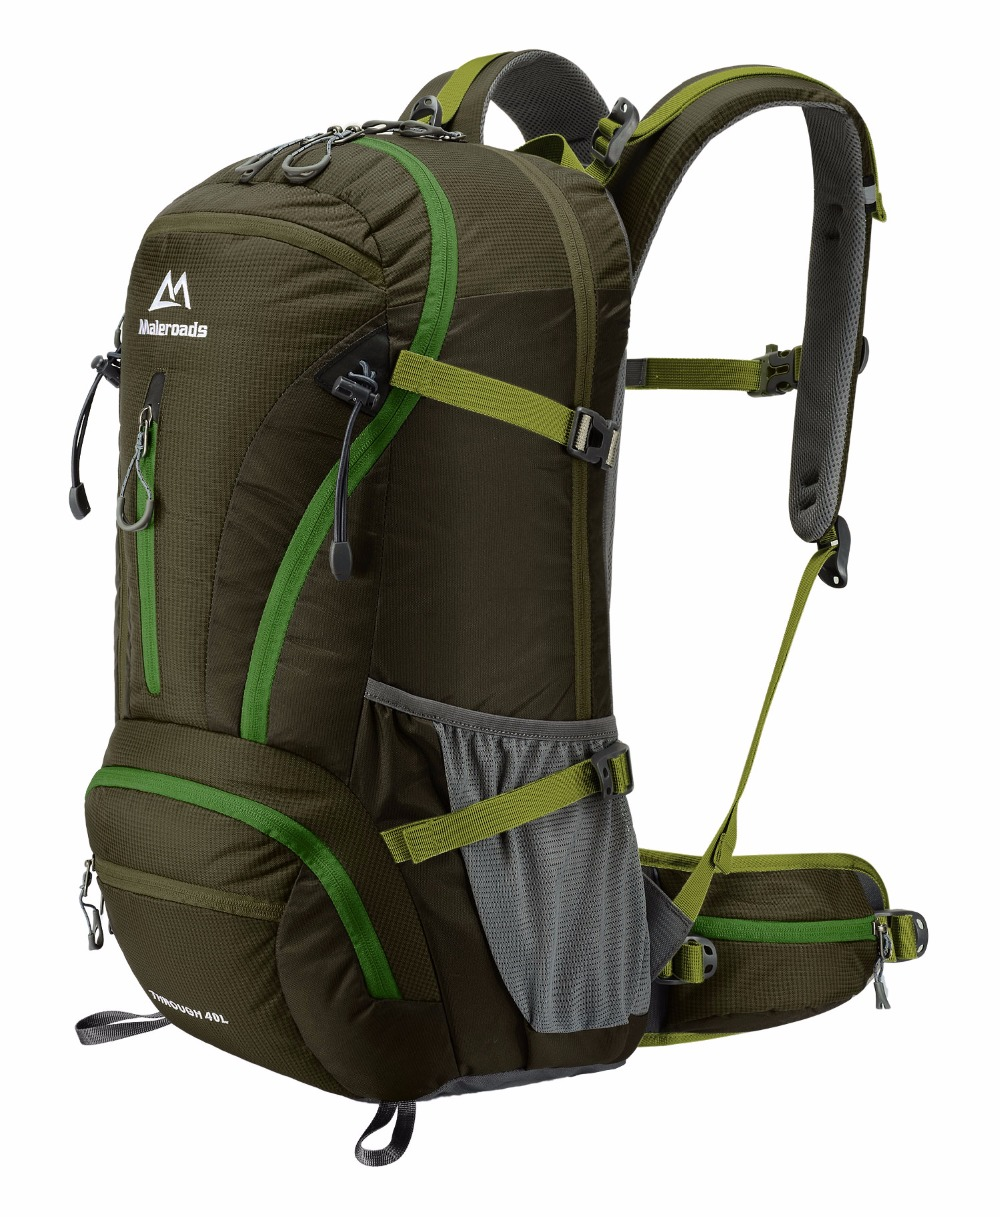 <font><b>Maleroads</b></font> Nylon Waterproof Dry Bag Outdoor Assault Rucksack Travel Backpack Men Women Camping Mountaineering Hiking Backpack <font><b>40L</b></font> image